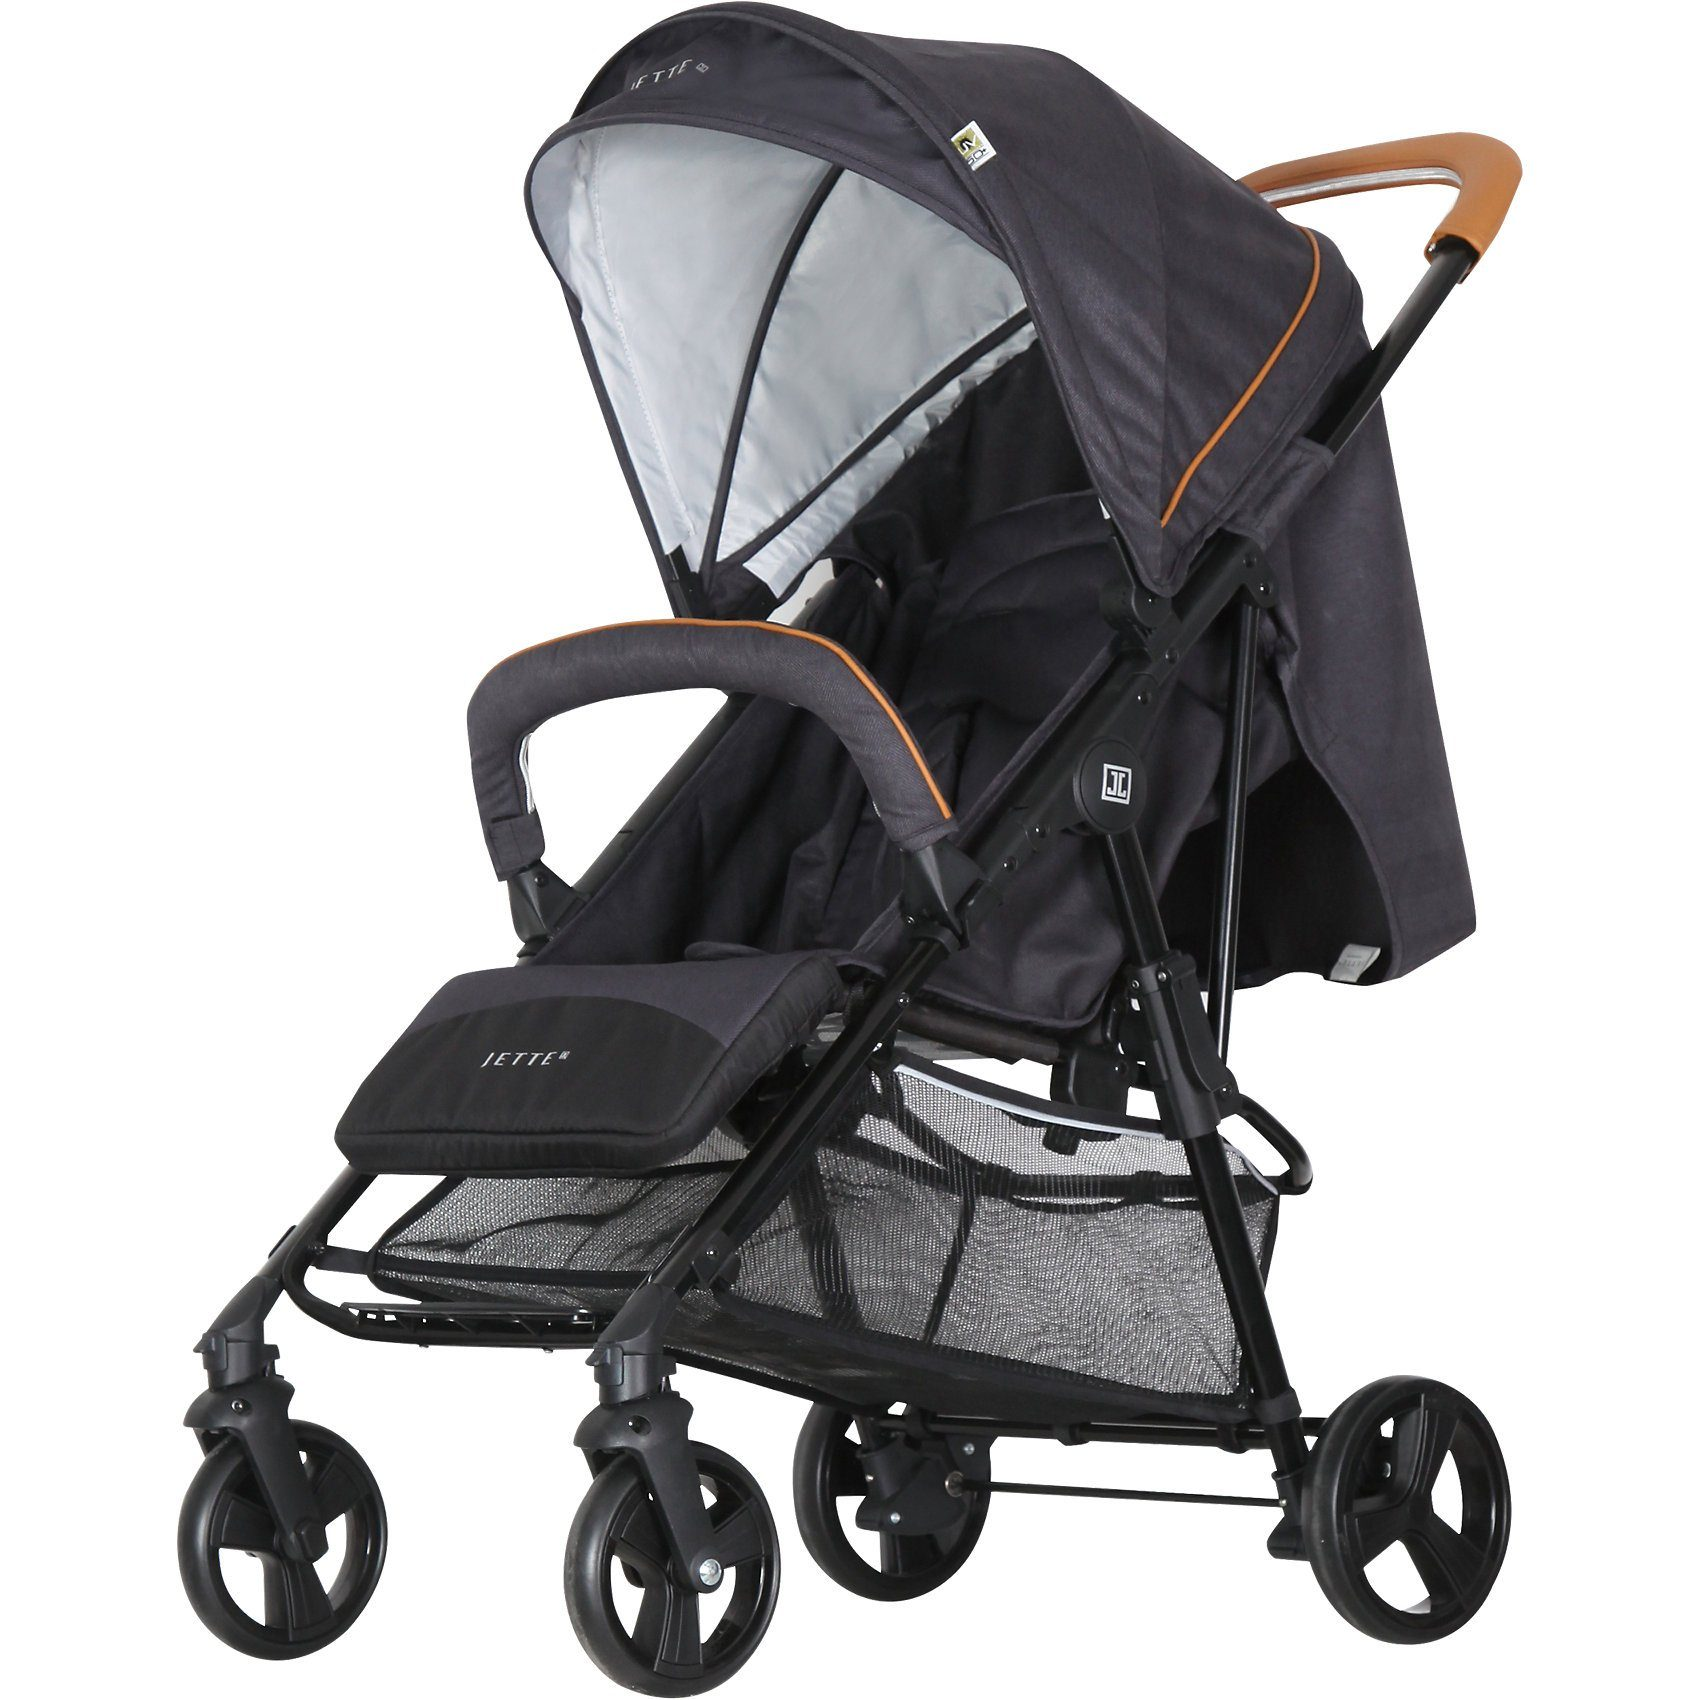 Jette Kinderwagen Sportwagen JACOB, fishbone graphite